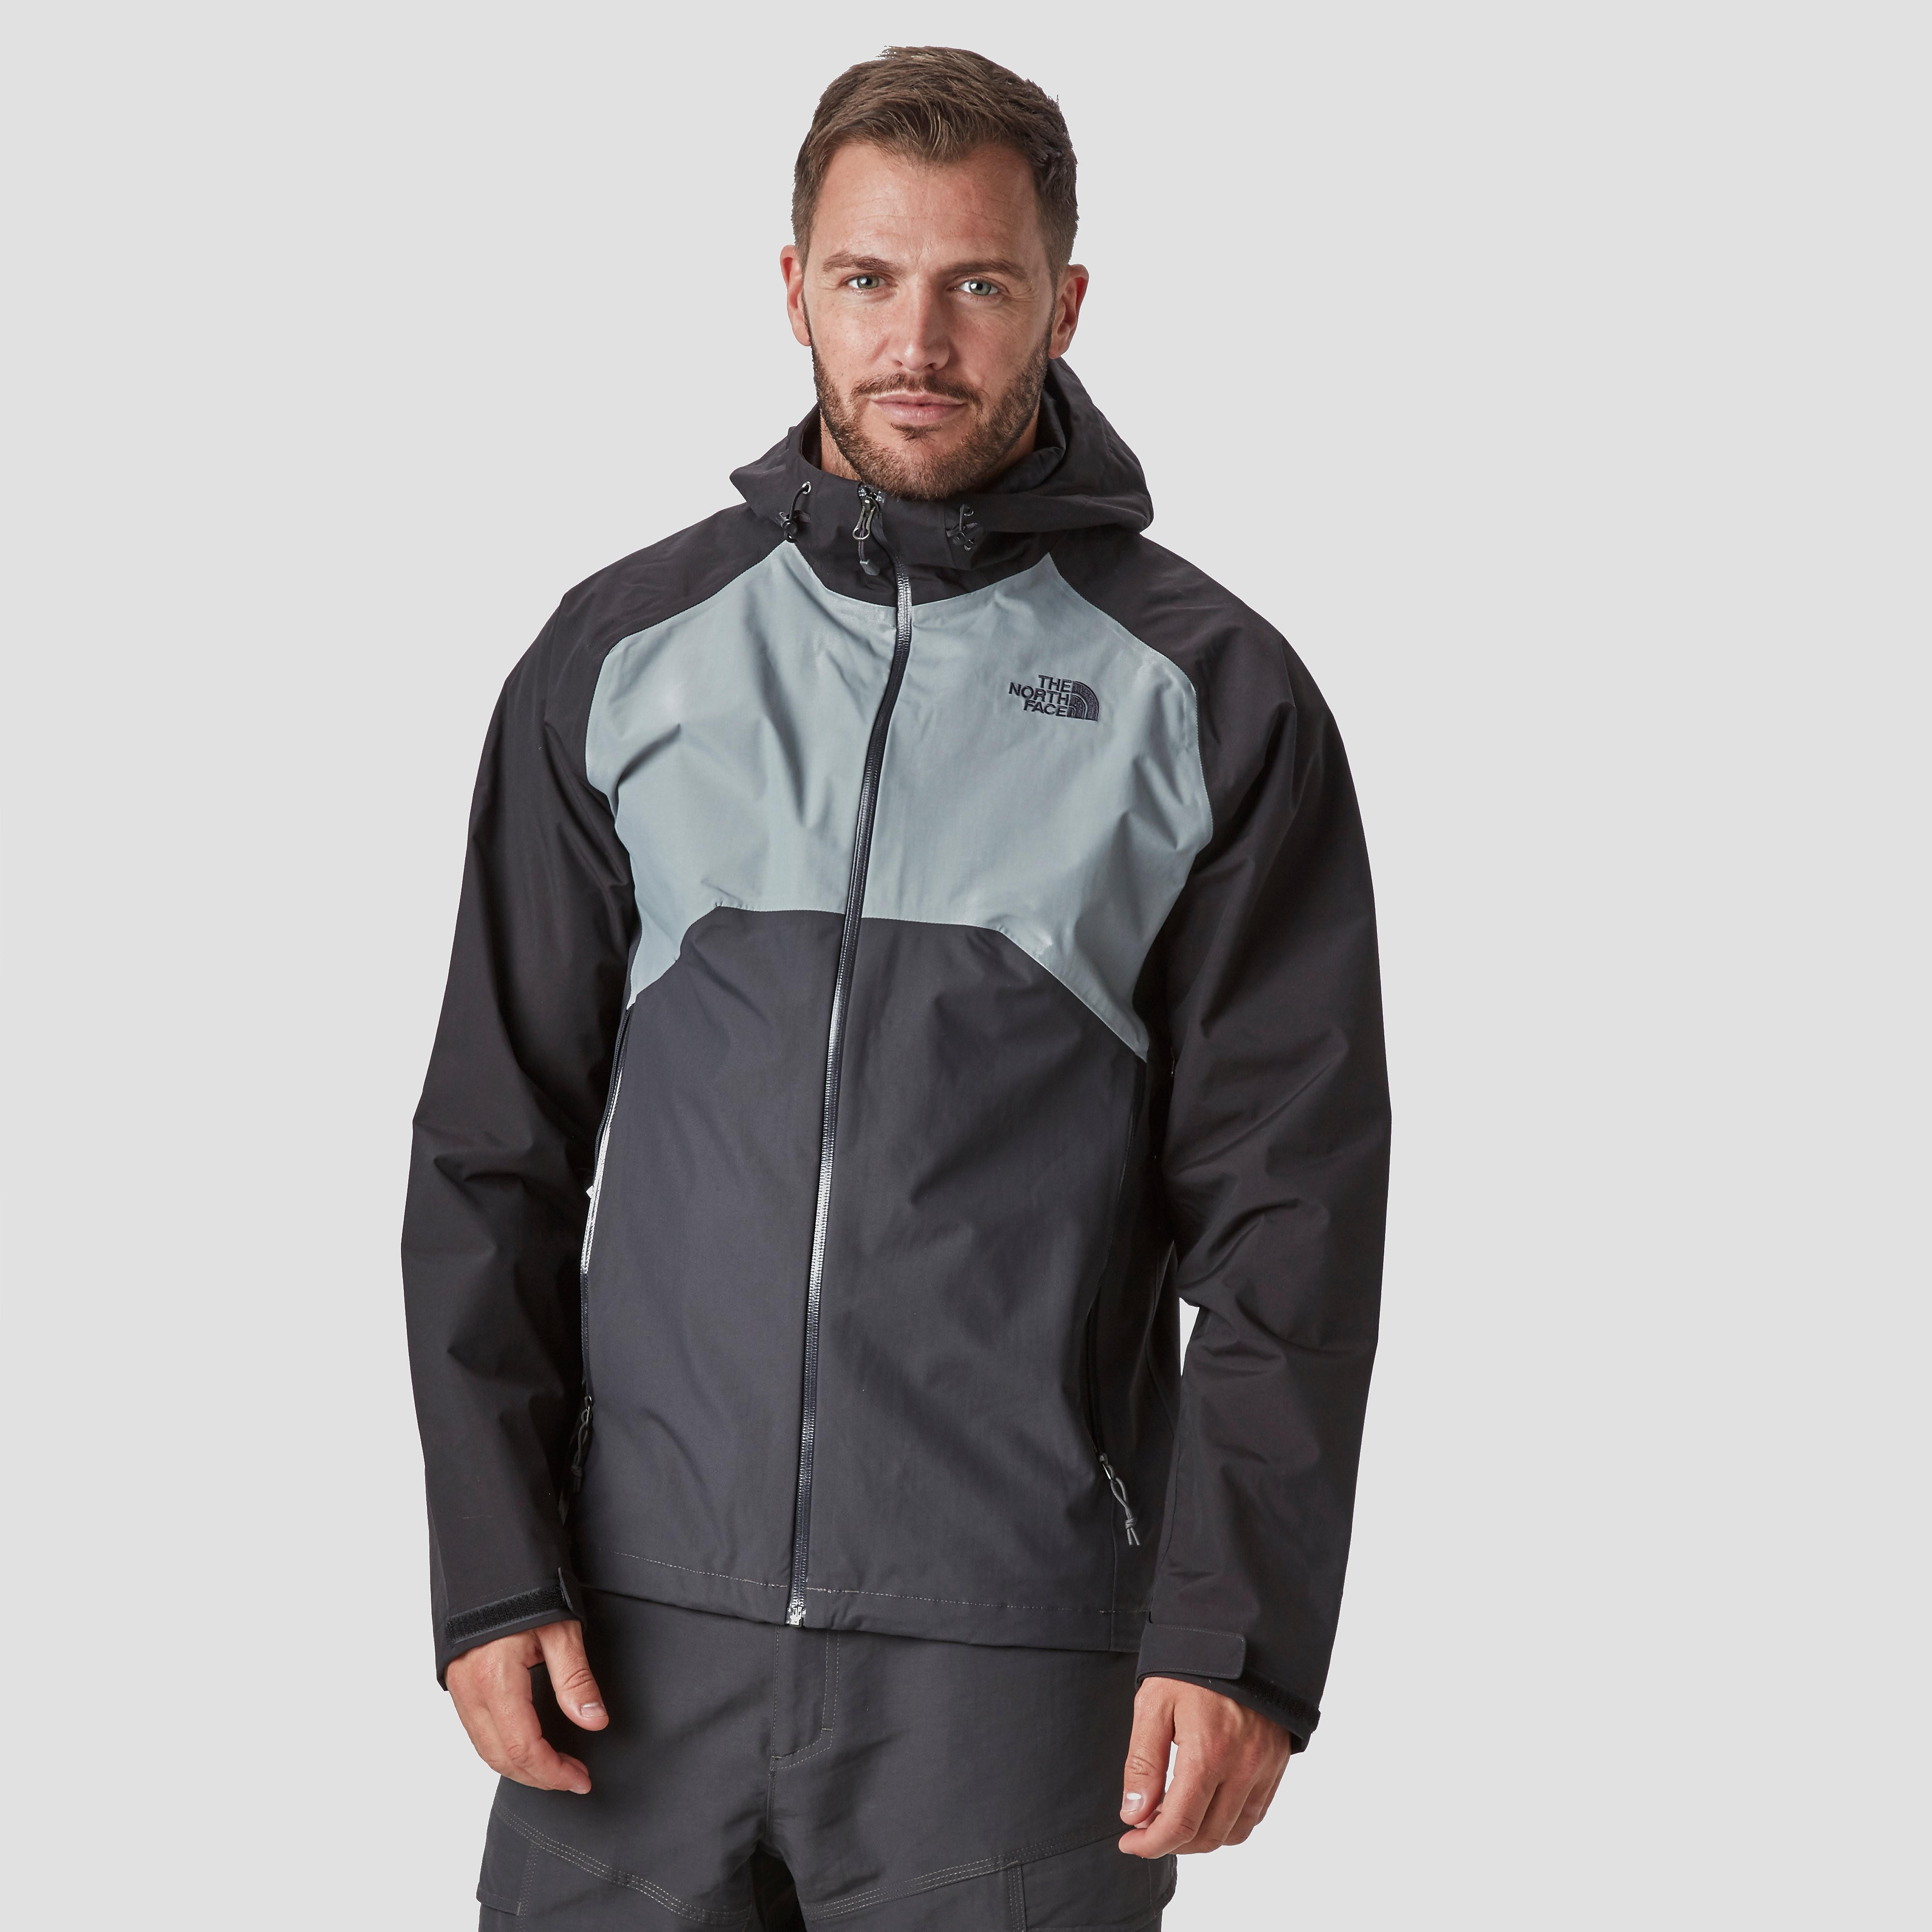 The North Face Men's Stratos DryVent Jacket